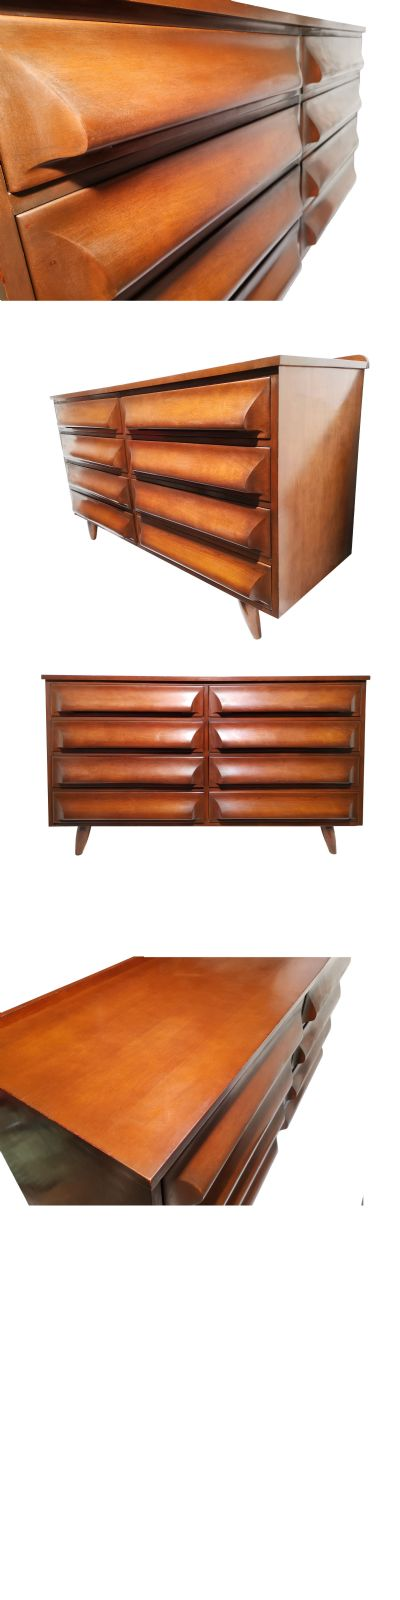 A stained Maple chest of drawers by Franklin Shockey, America c1960s